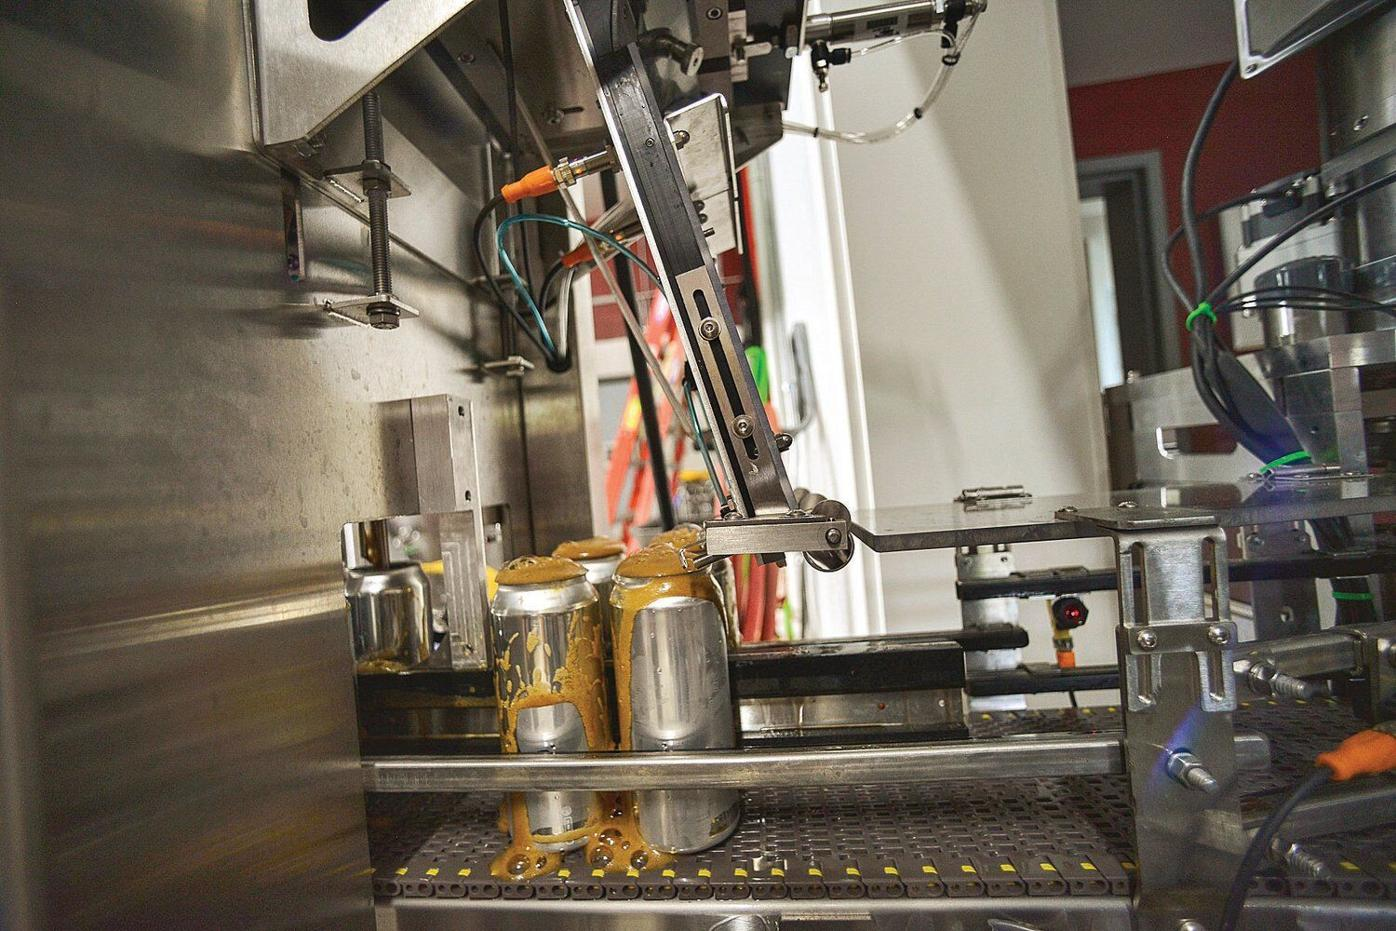 Yes, they can: Whetstone keeps the beer flowing